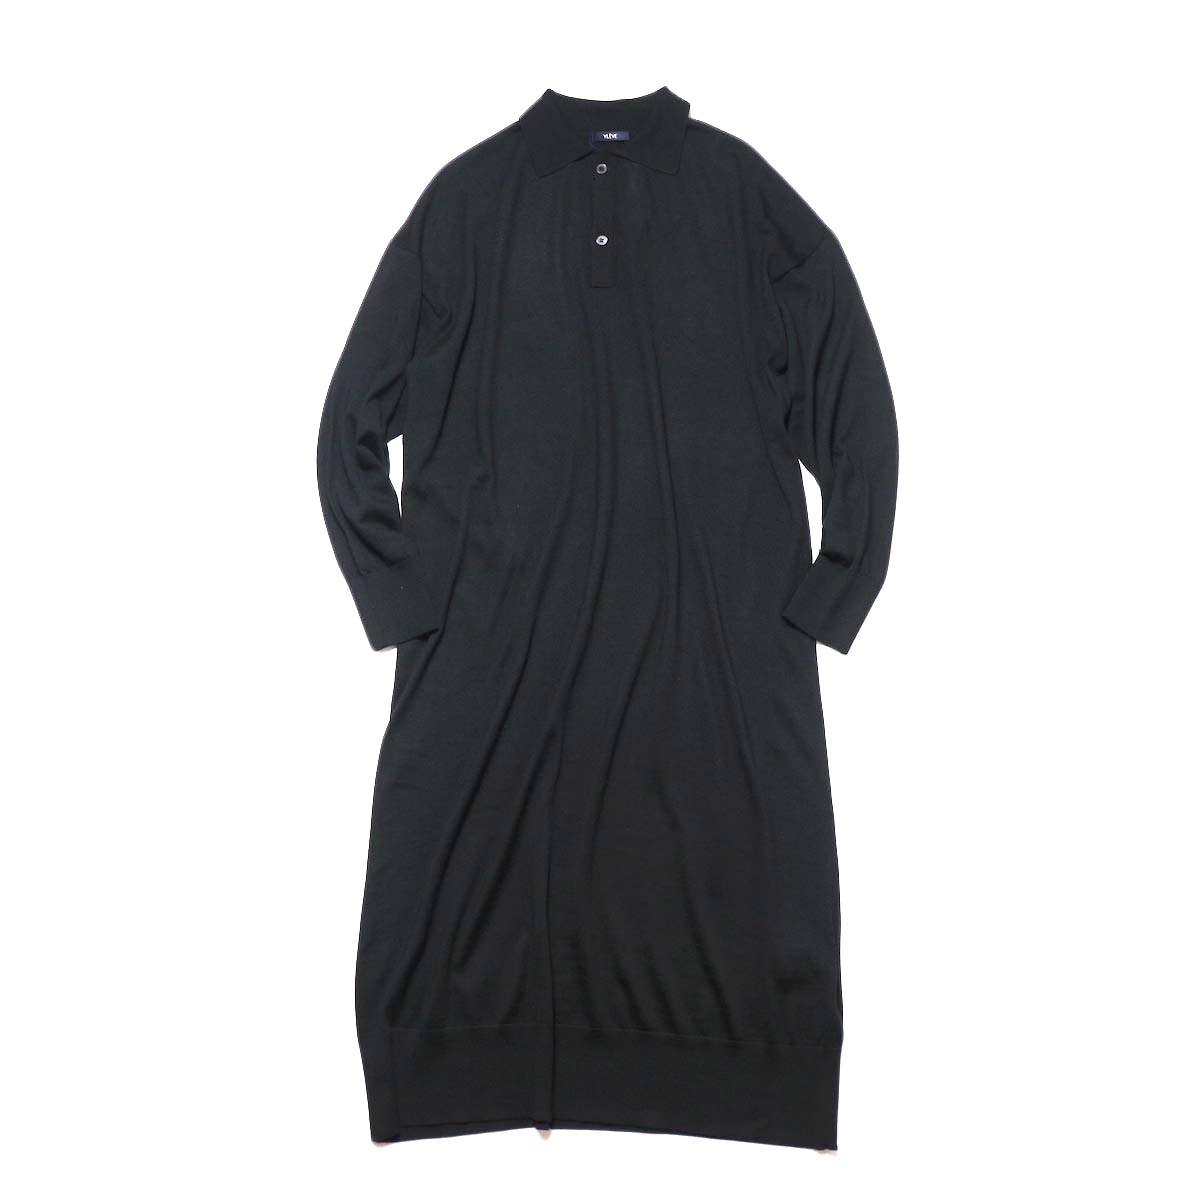 YLEVE / WOOL SILK CASHMERE POLO KN OP (black) 正面